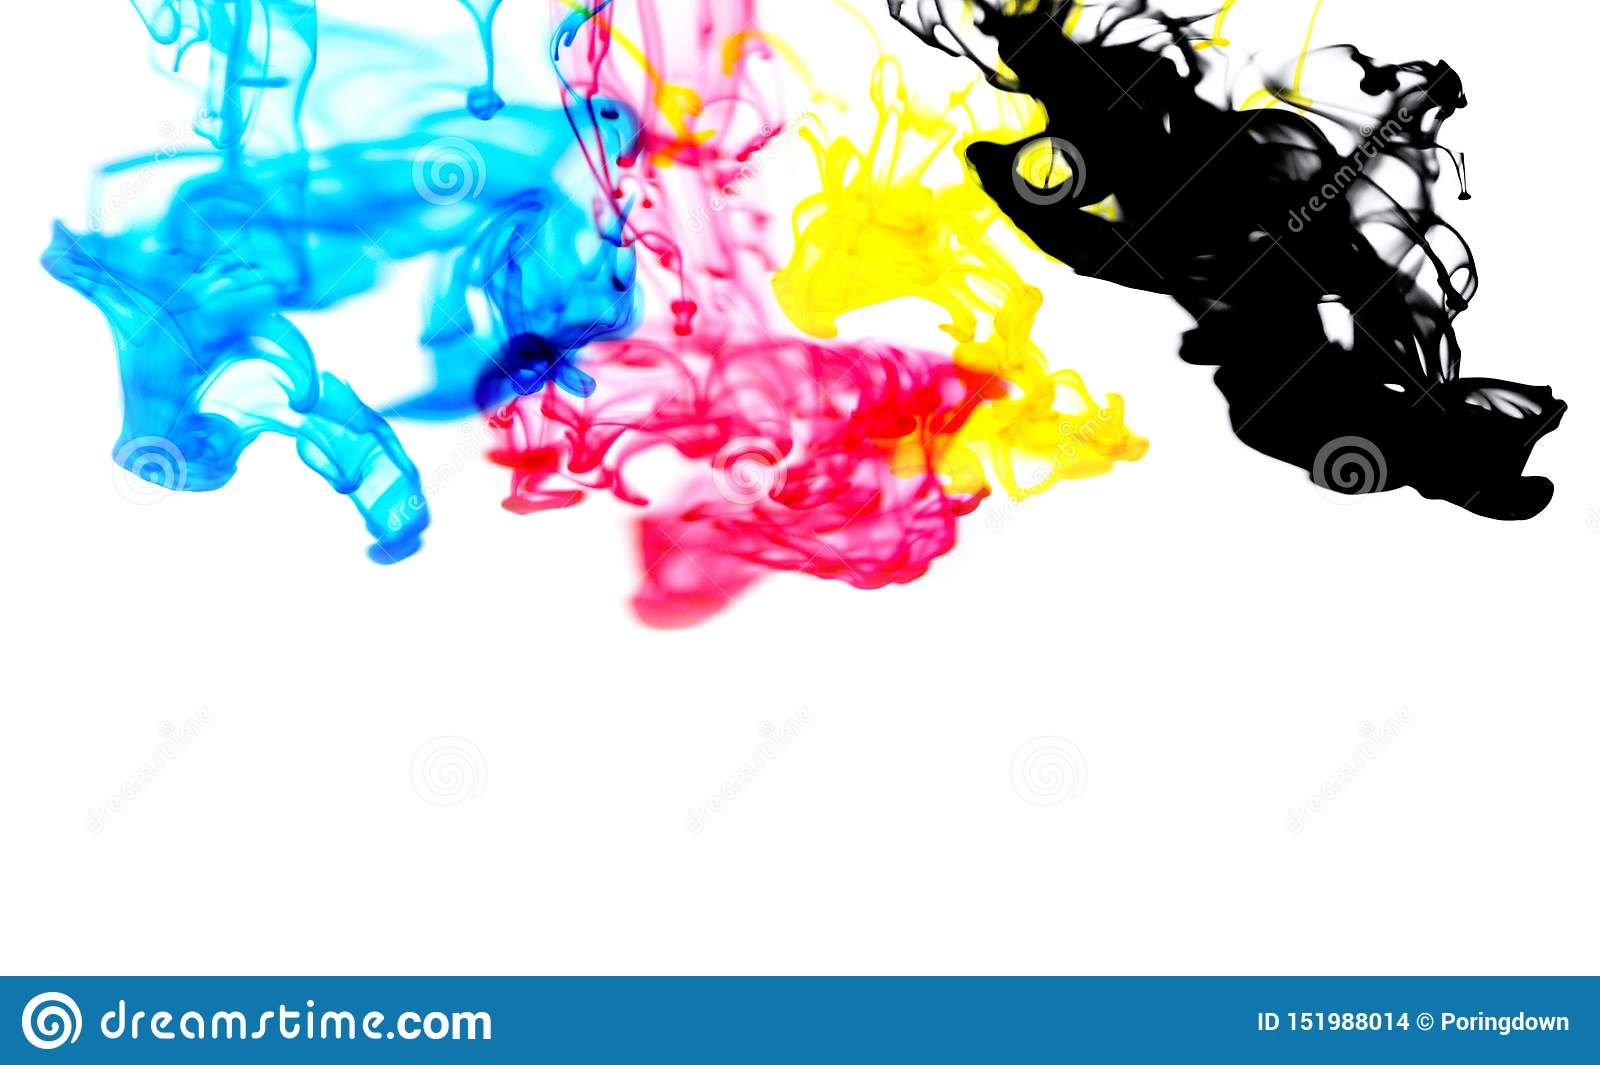 Cmyk ink concept color splash for paint with cyan blue red magenta yellow and black - Rainbow ink drop Acrylic colors in water on